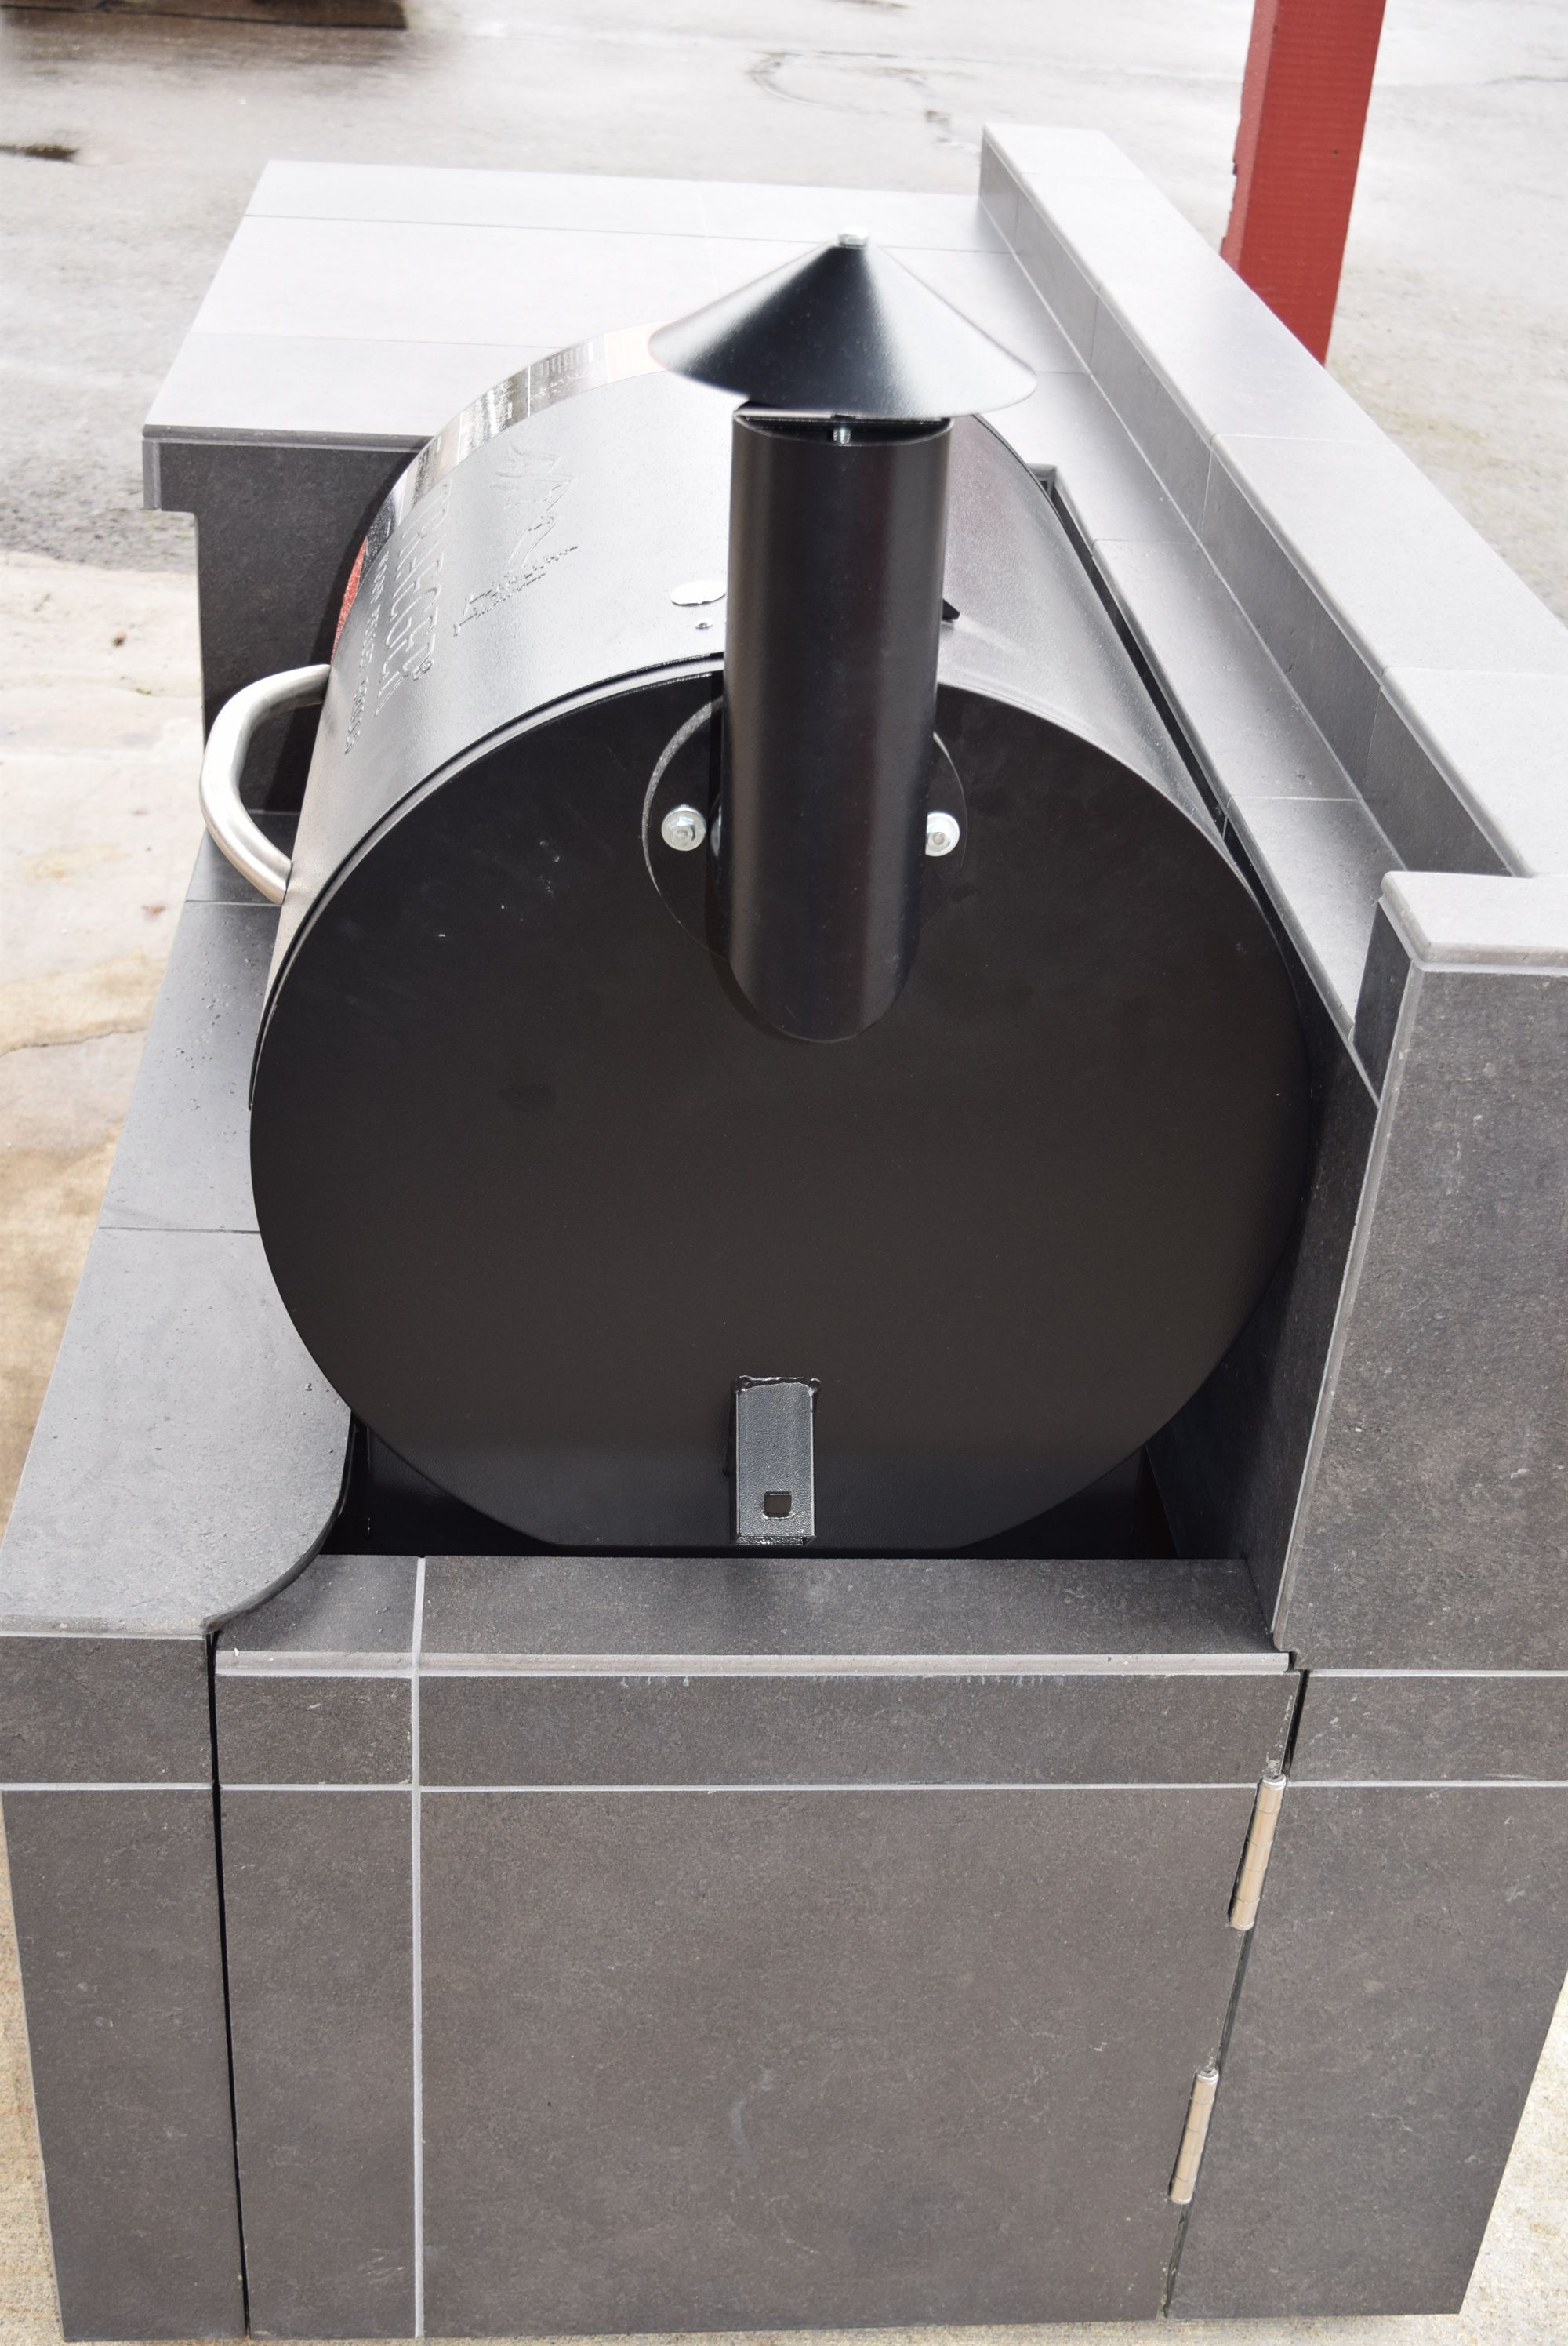 Built In Outdoor Seating Home Design Ideas Pictures: Outdoor Kitchen For The Traeger Pellet Grill! We Custom